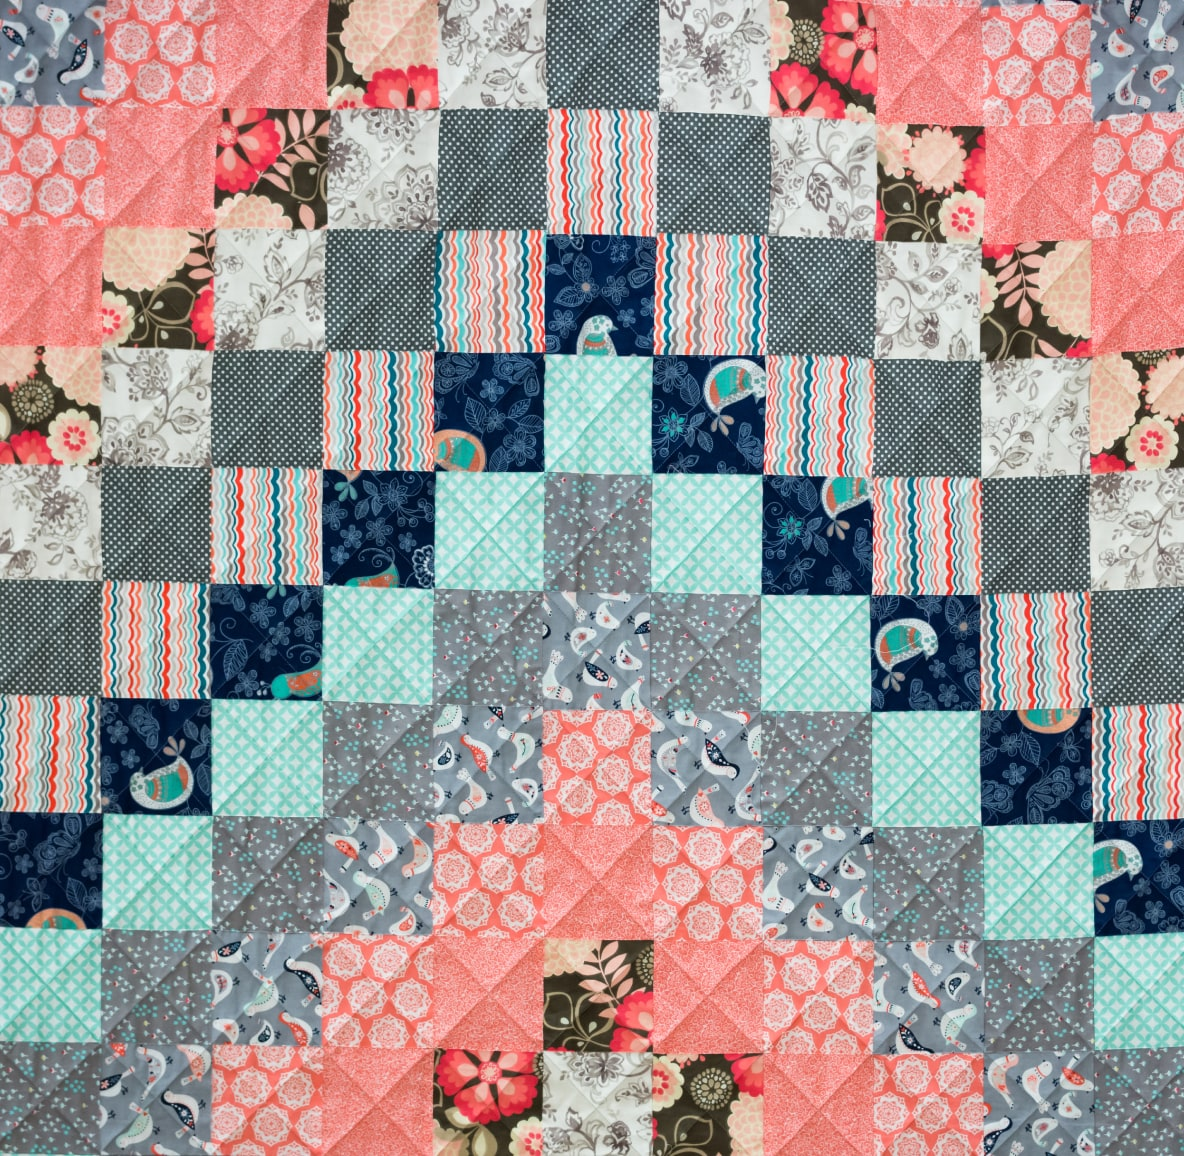 A handmade quilt with blue, pink and white patterned squares